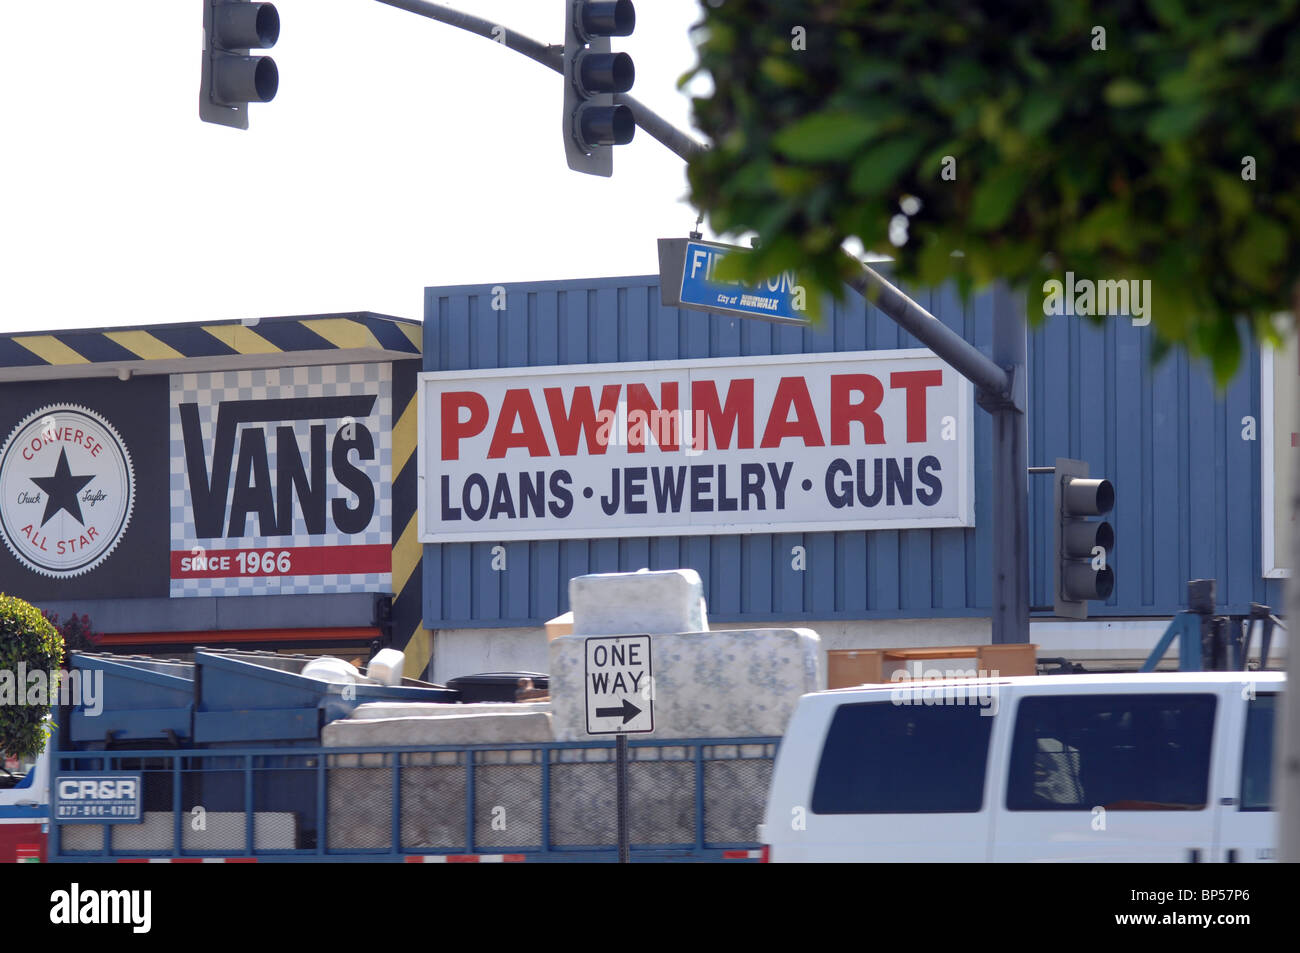 Norwalk Pawn Shop >> Pawn Shop For Loans Jewelry And Guns Stock Photo 30848670